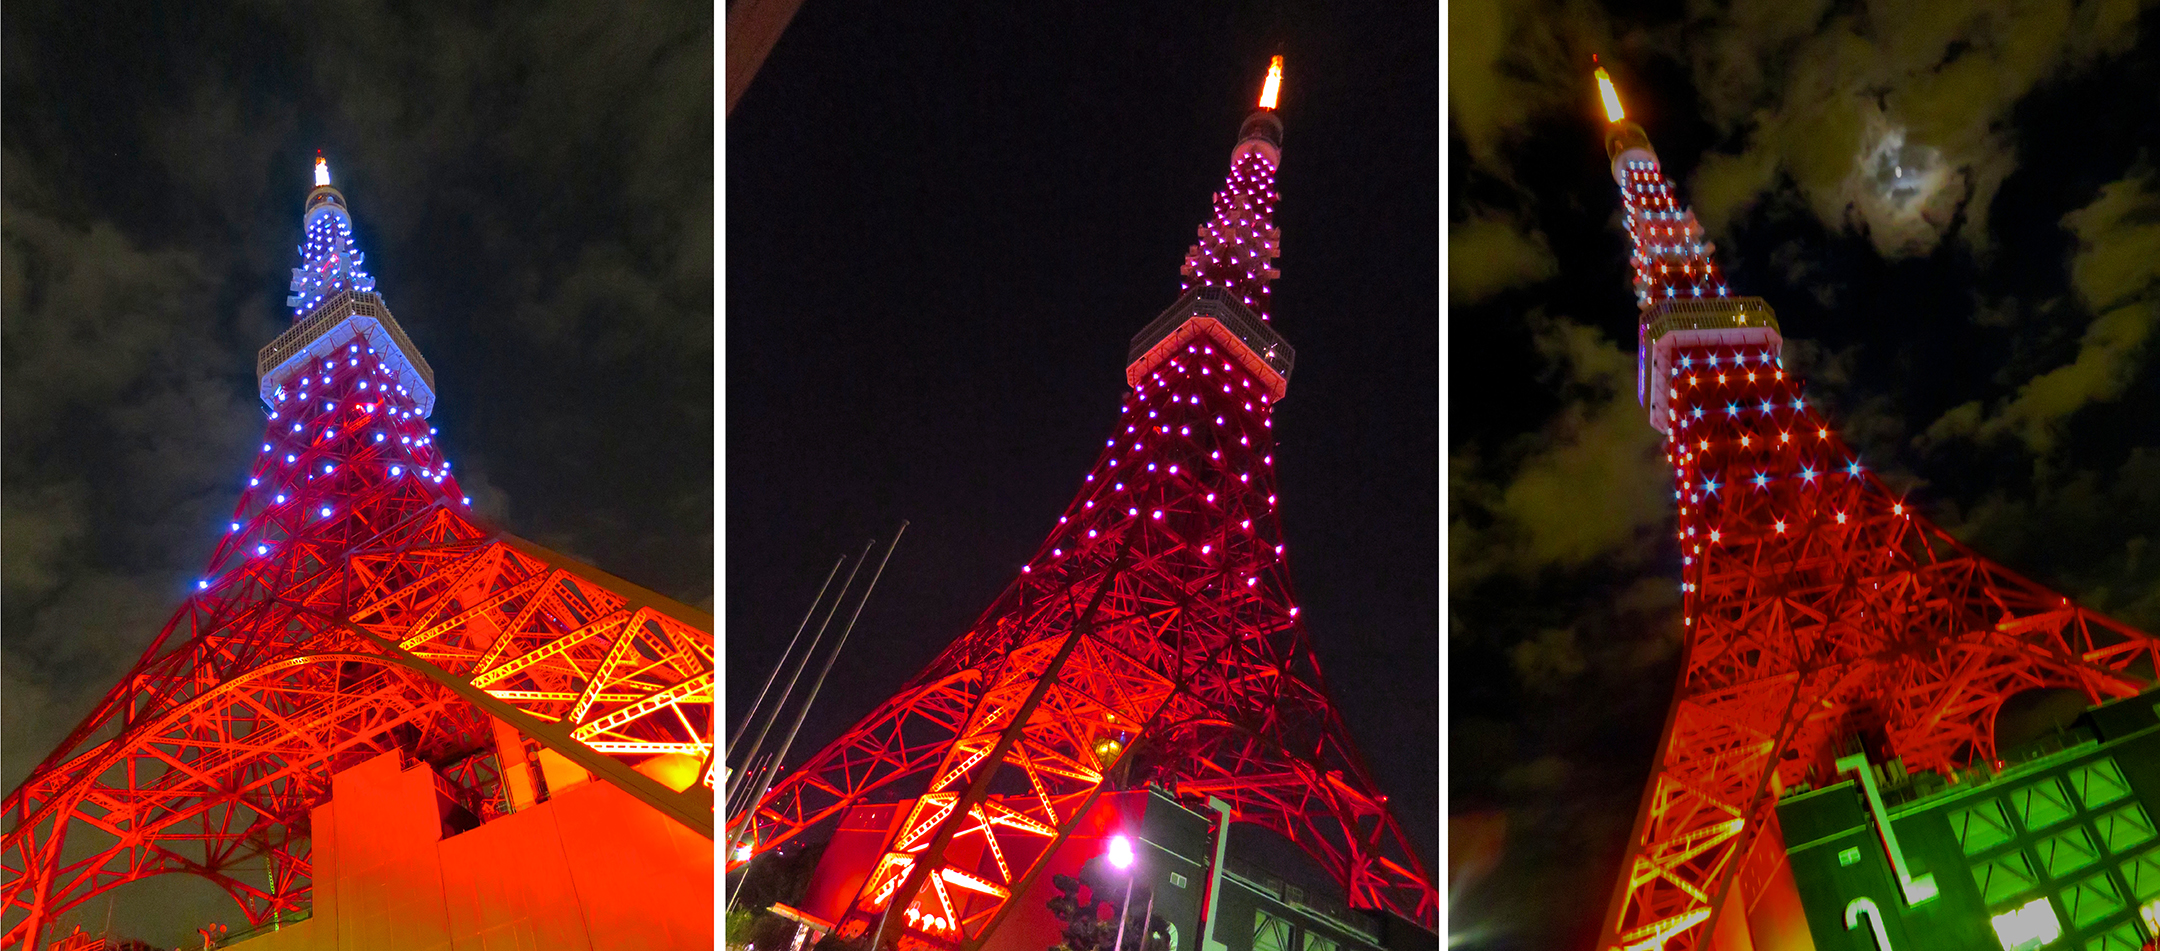 Every weekend and on special days, Tokyo Tower is lit up in different colors from 8-10 at night. Schedule for the current month here: http://www.tokyotower.co.jp/lightup/